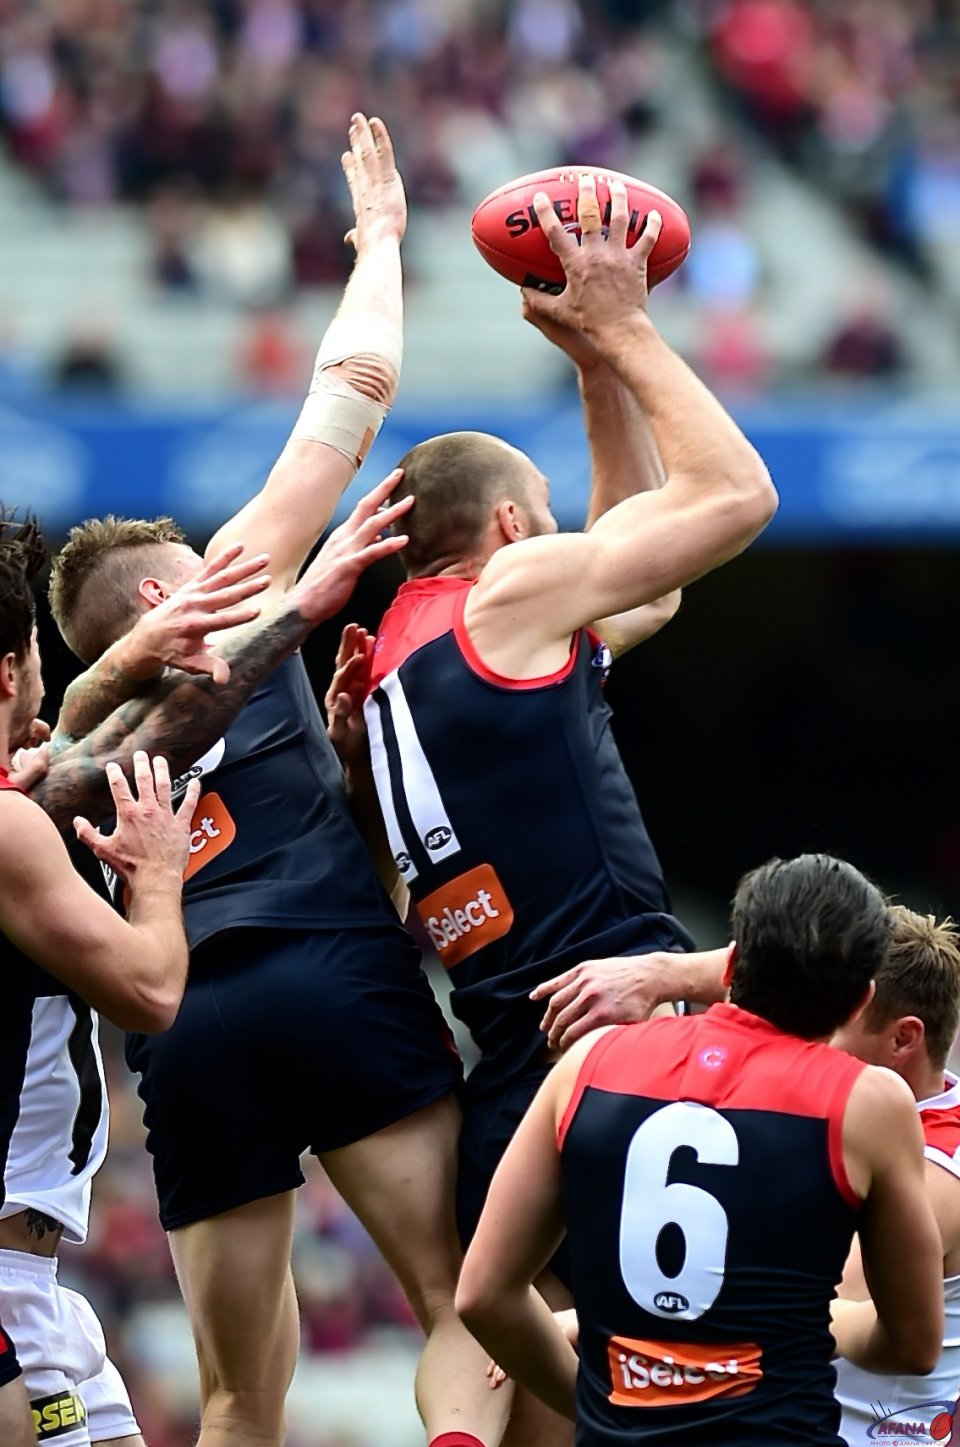 Gawn defensive mark.